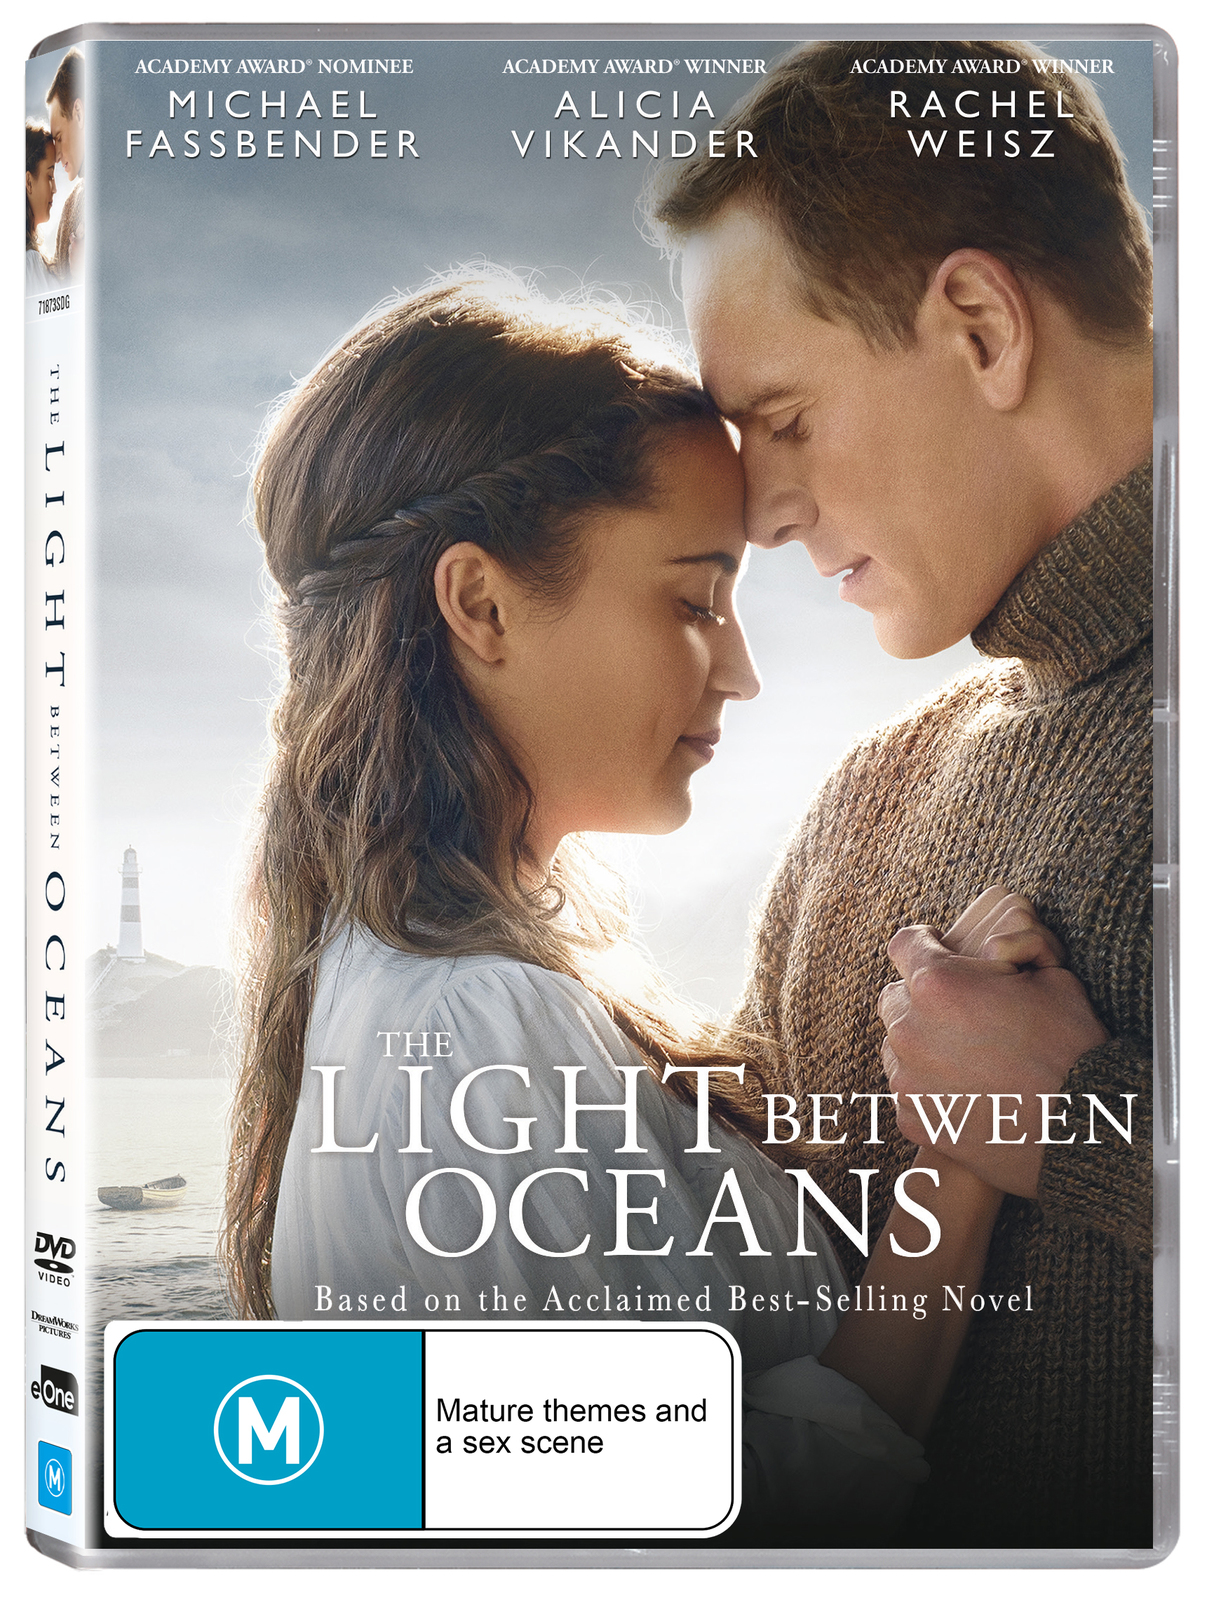 The Light Between Oceans on DVD image